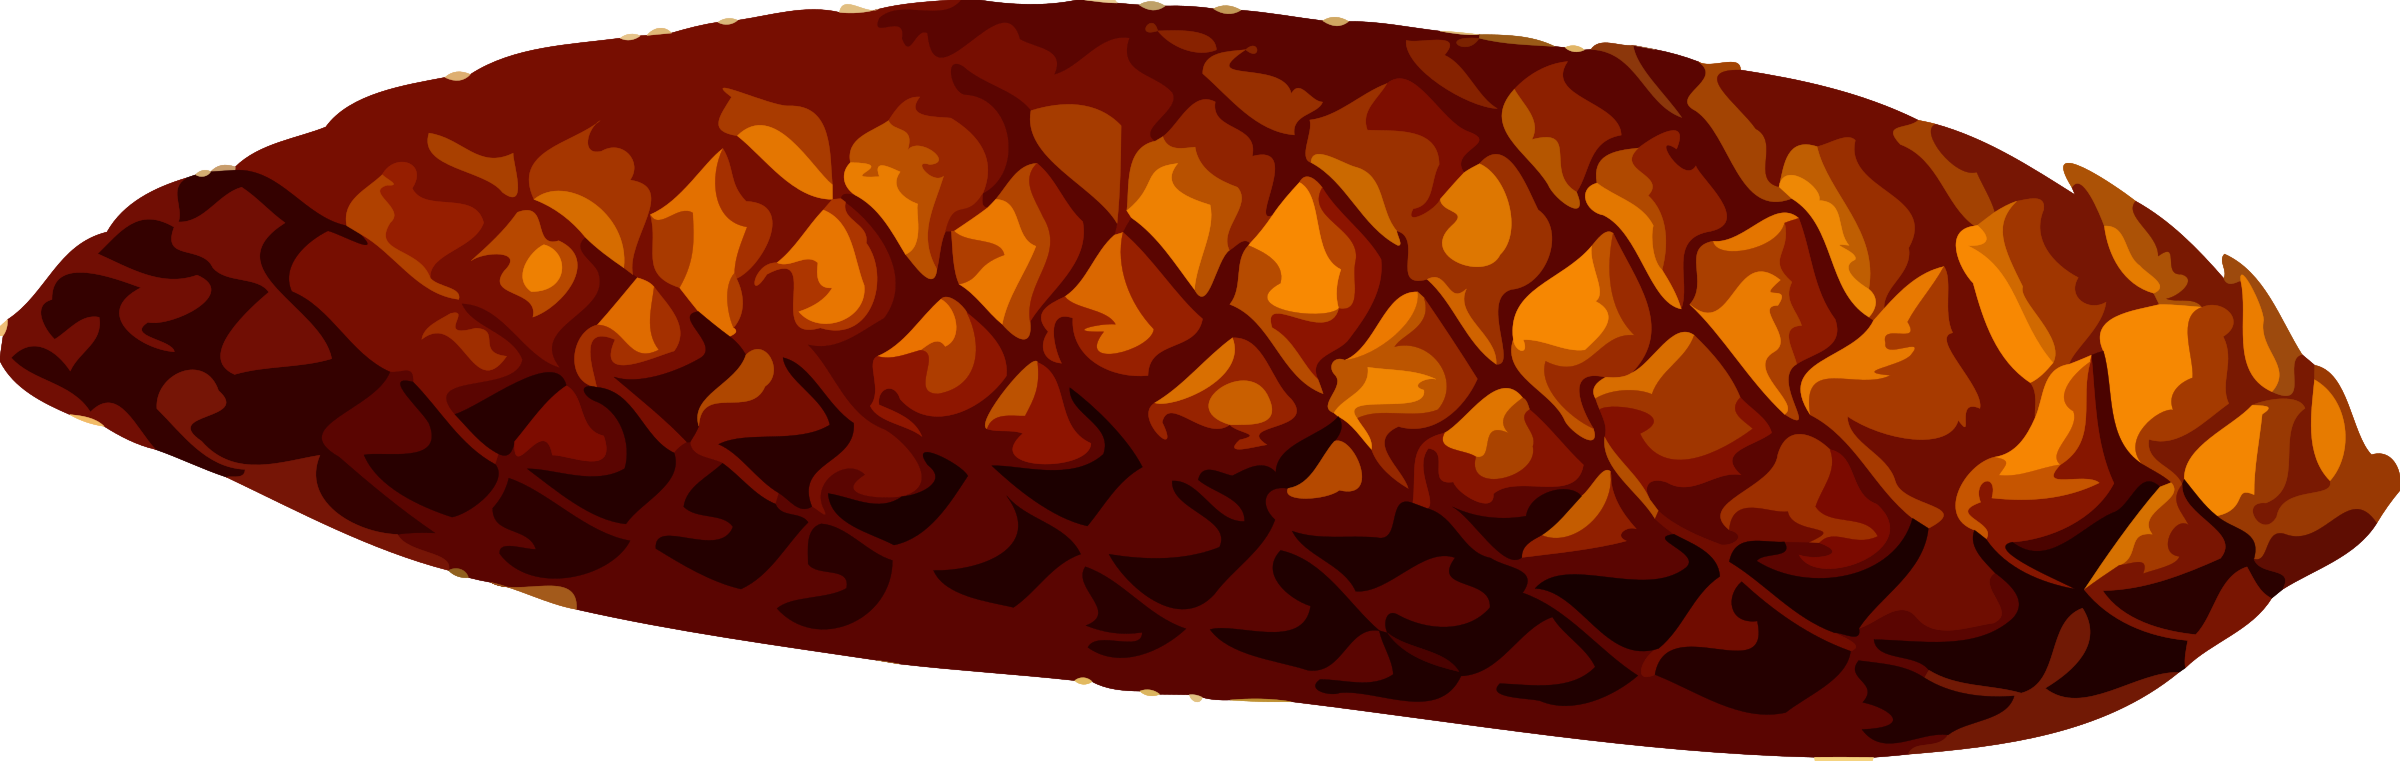 Pine cone (low resolution) by Firkin